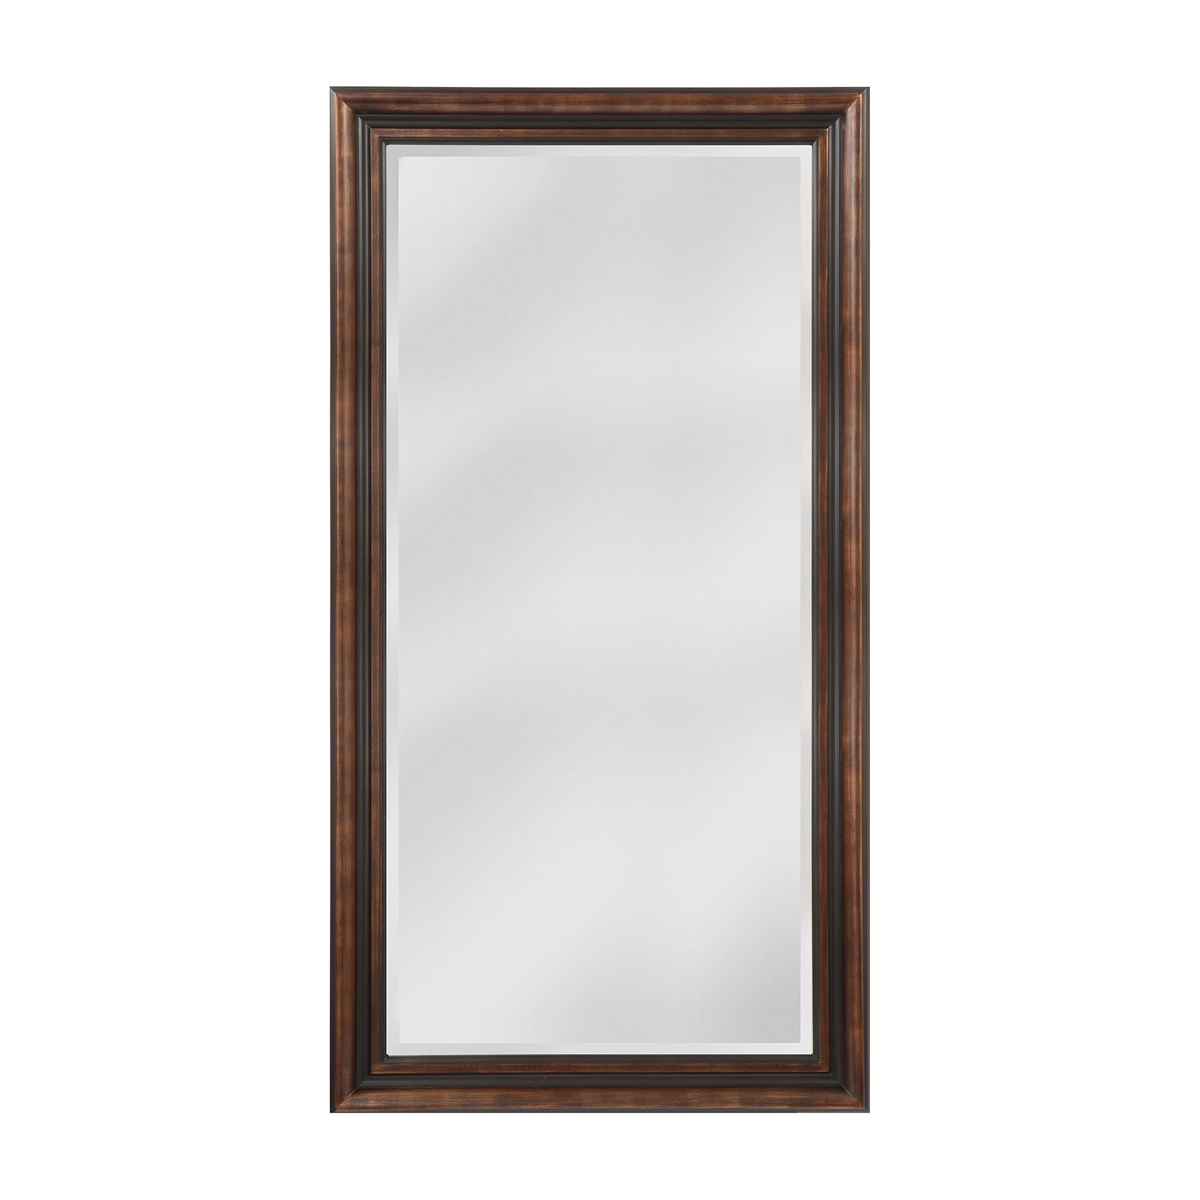 Mirror masters mw4105d 0037 gastonia 76h x 40l for Traditional mirror